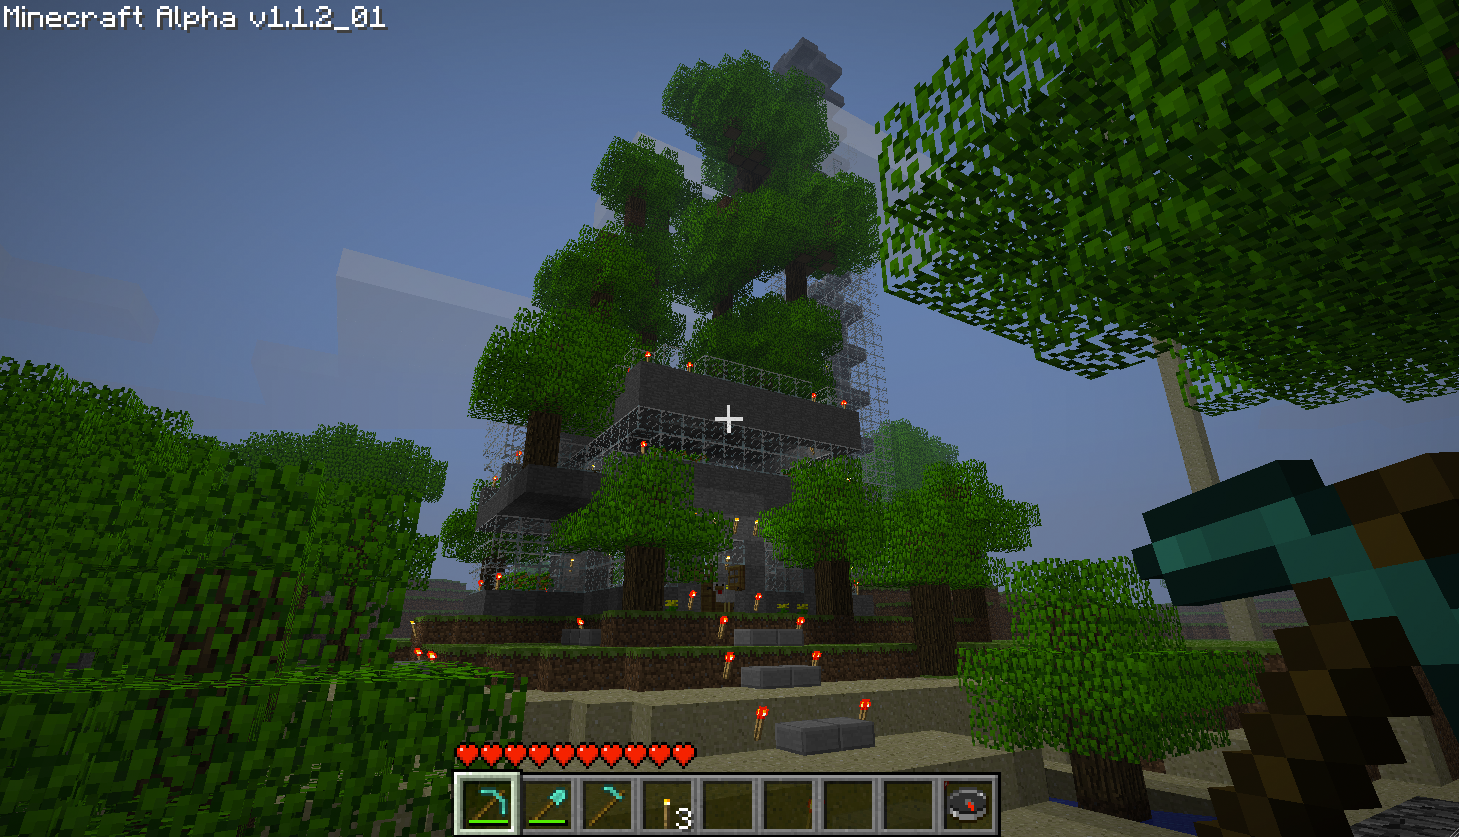 Minecraft bilder minecraft haus overclockers at